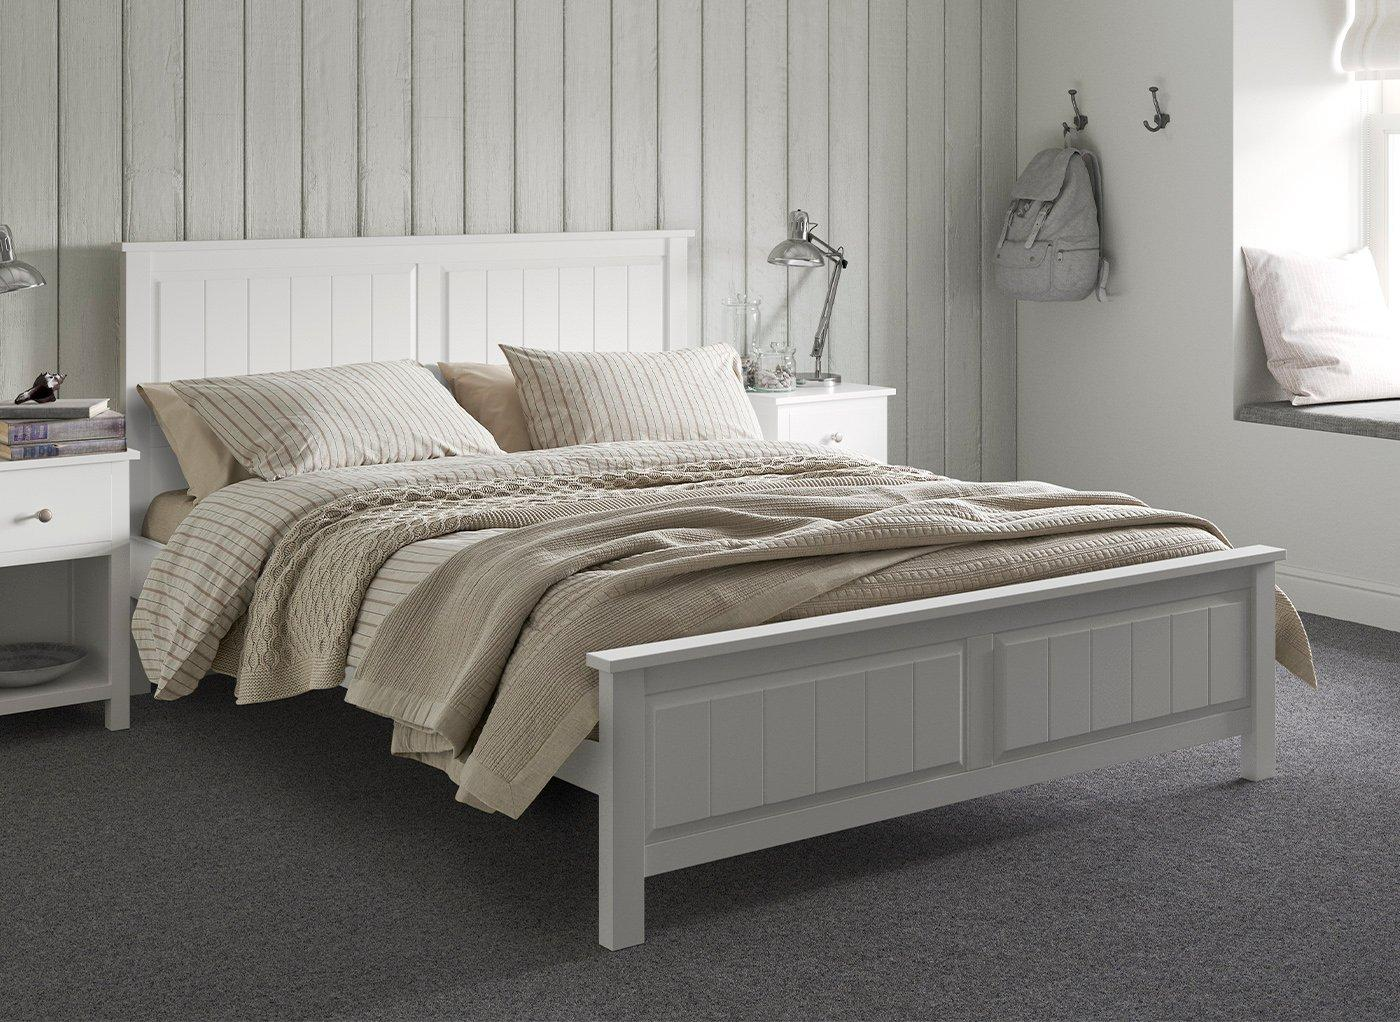 Woodbridge Wooden Bed Frame 3'0 Single WHITE